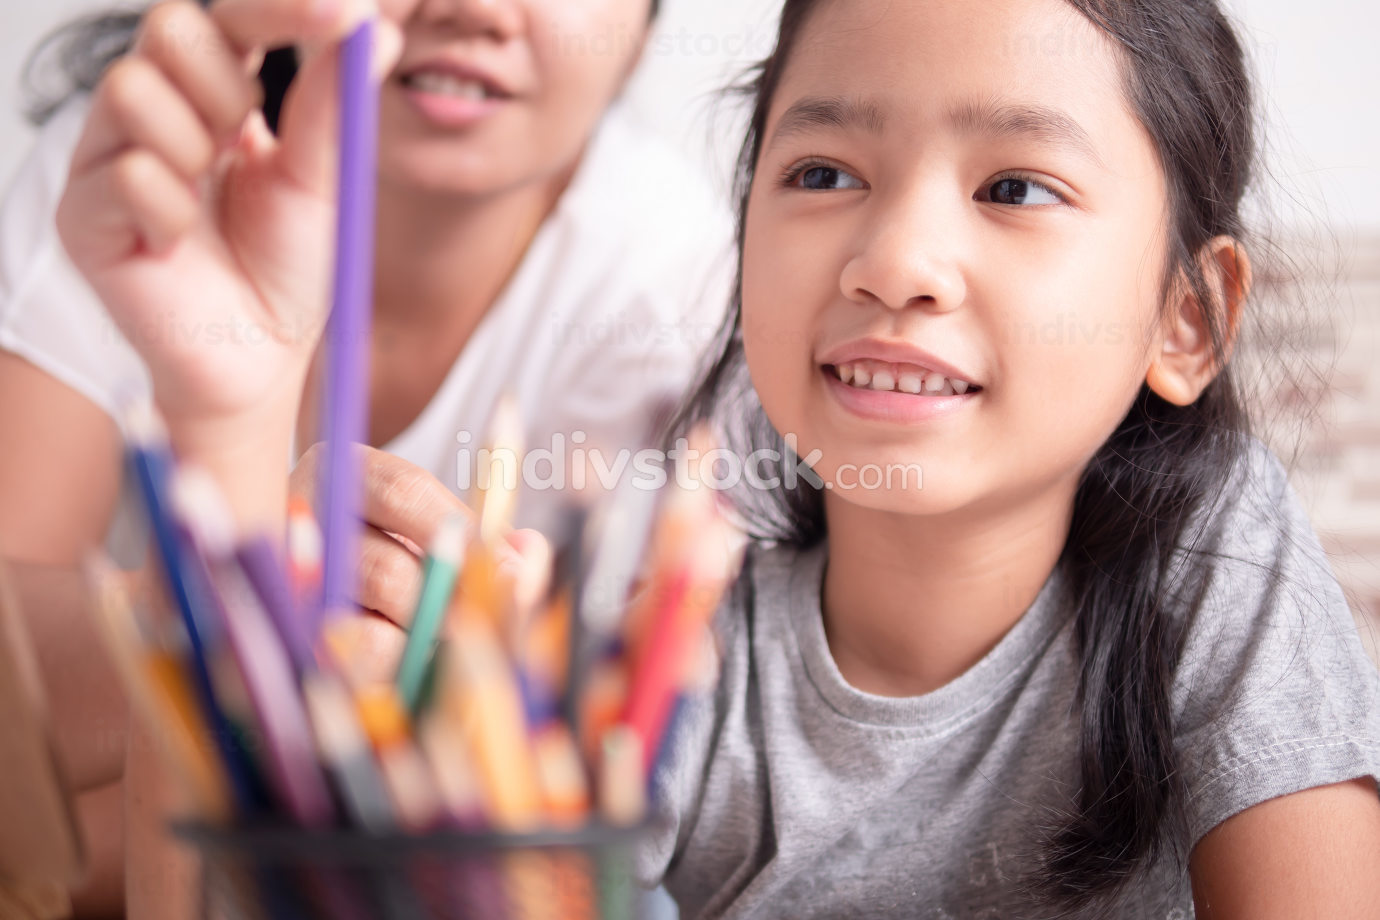 Asian little girl and a woman selecting a color for painting